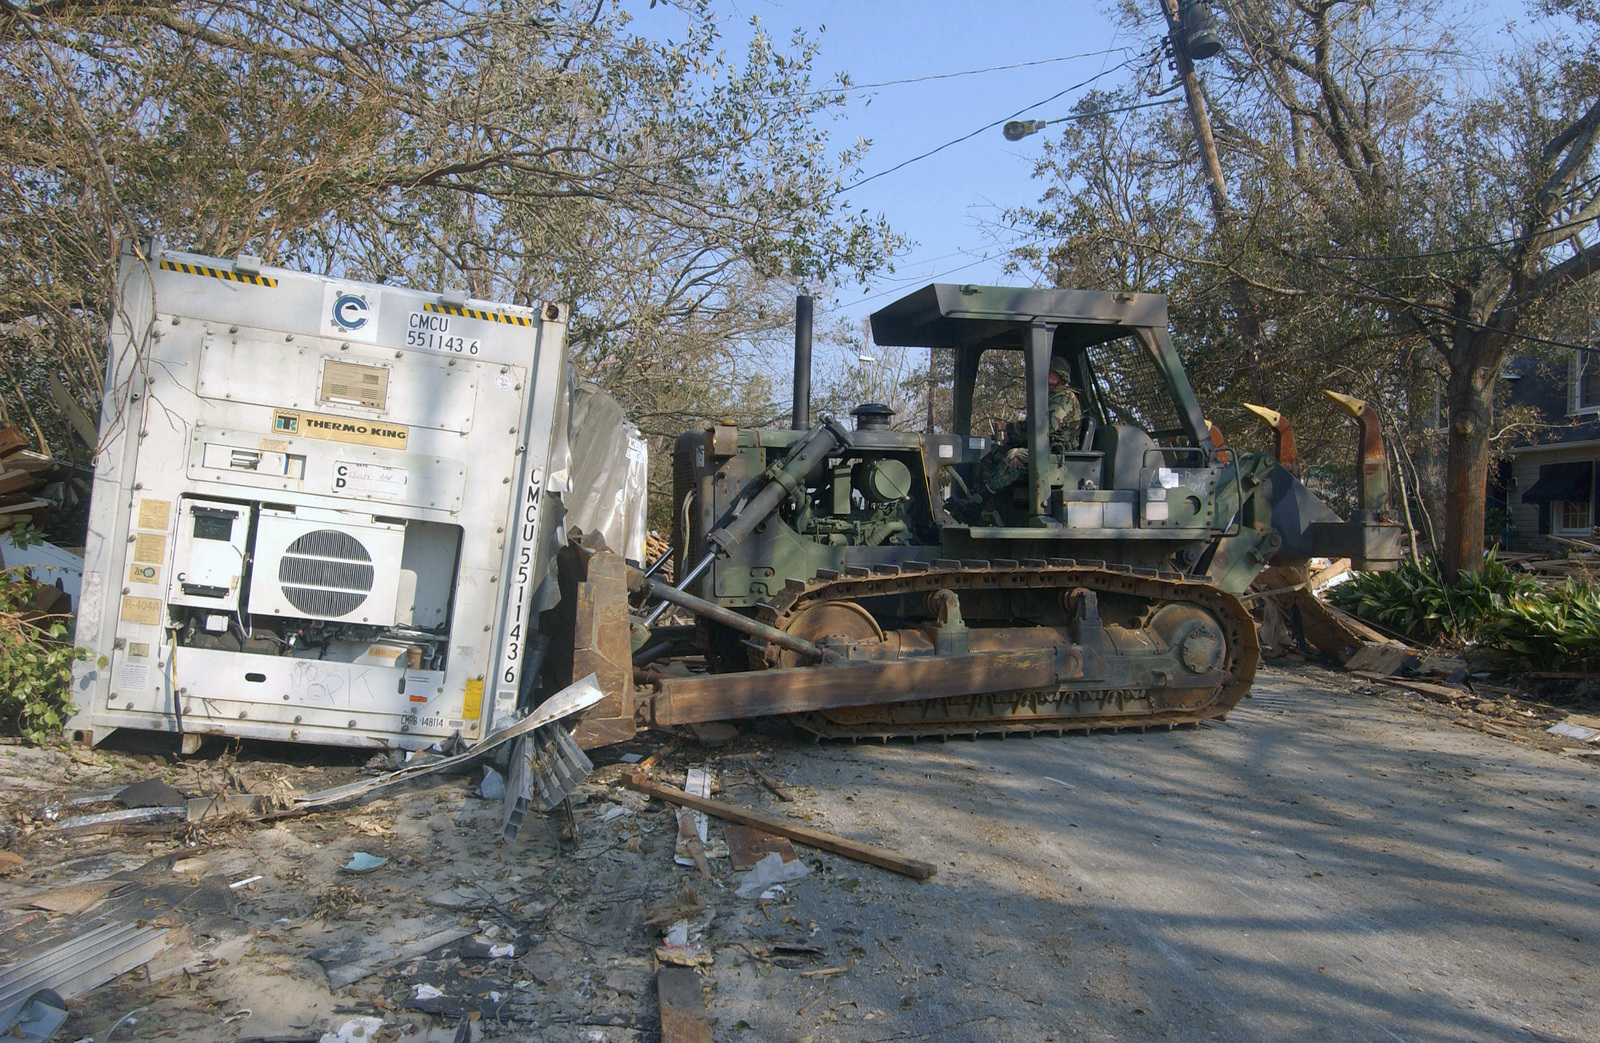 US Army (USA) Sergeant (SGT) Ronnie Thomas, assigned to the 230th Engineering Battalion, Tennessee (TN) Army National Guard, clears a road with a bulldozer in Biloxi, Mississippi (MS), after the Hurricane Katrina battered the Gulf Coast with wind gusts in excess of 140 miles per hour, leaving millions of people without power and hundreds of thousands homeless